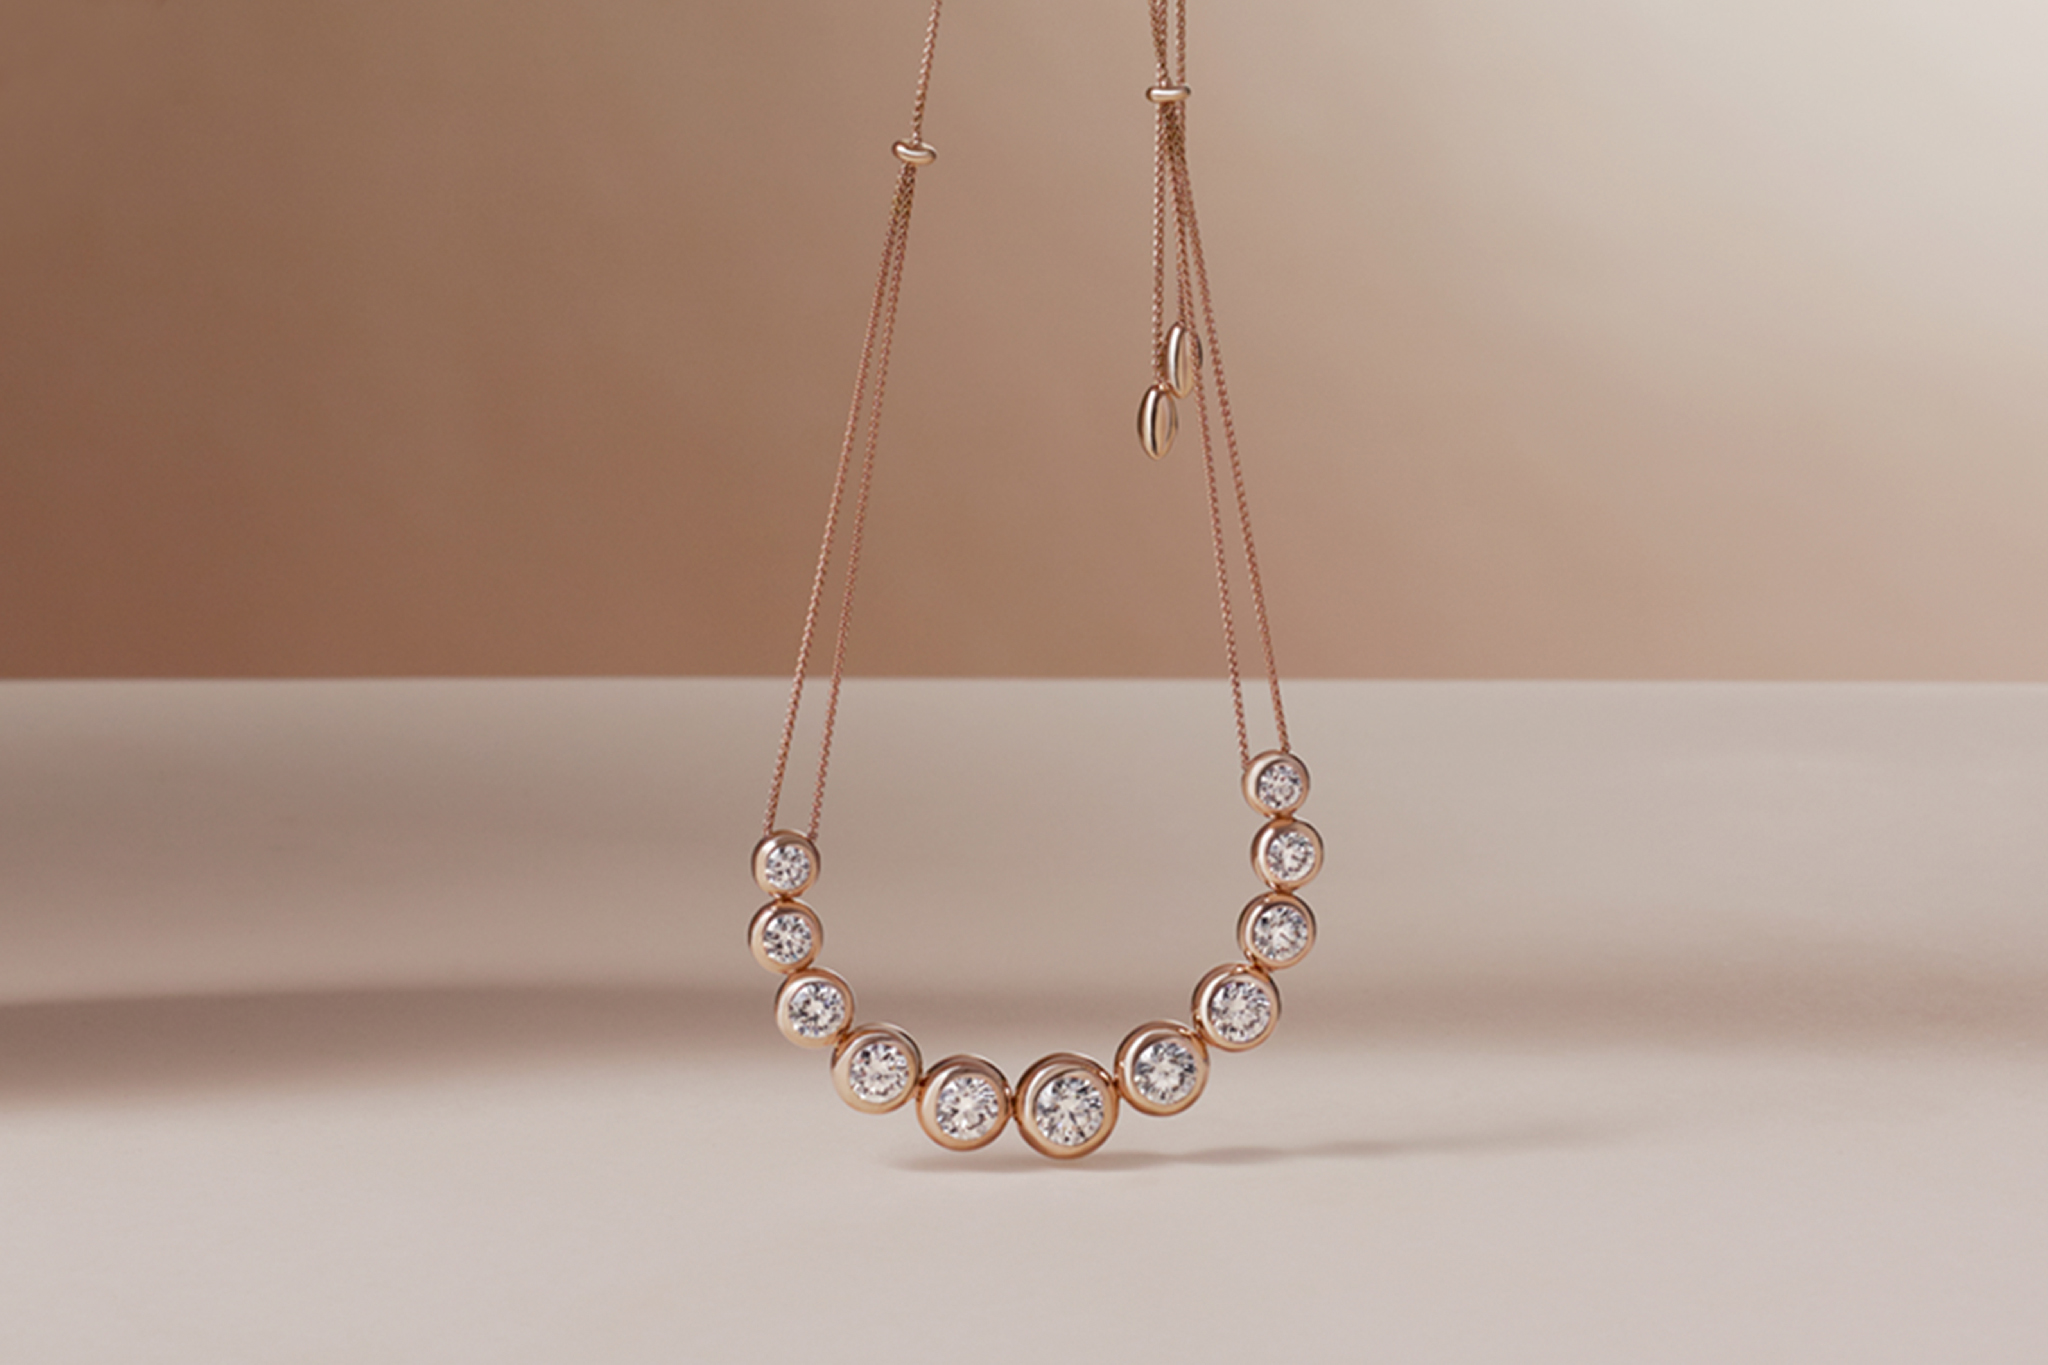 The statement piece, the Stellar Cosmos Necklace, retailing for $350,000.